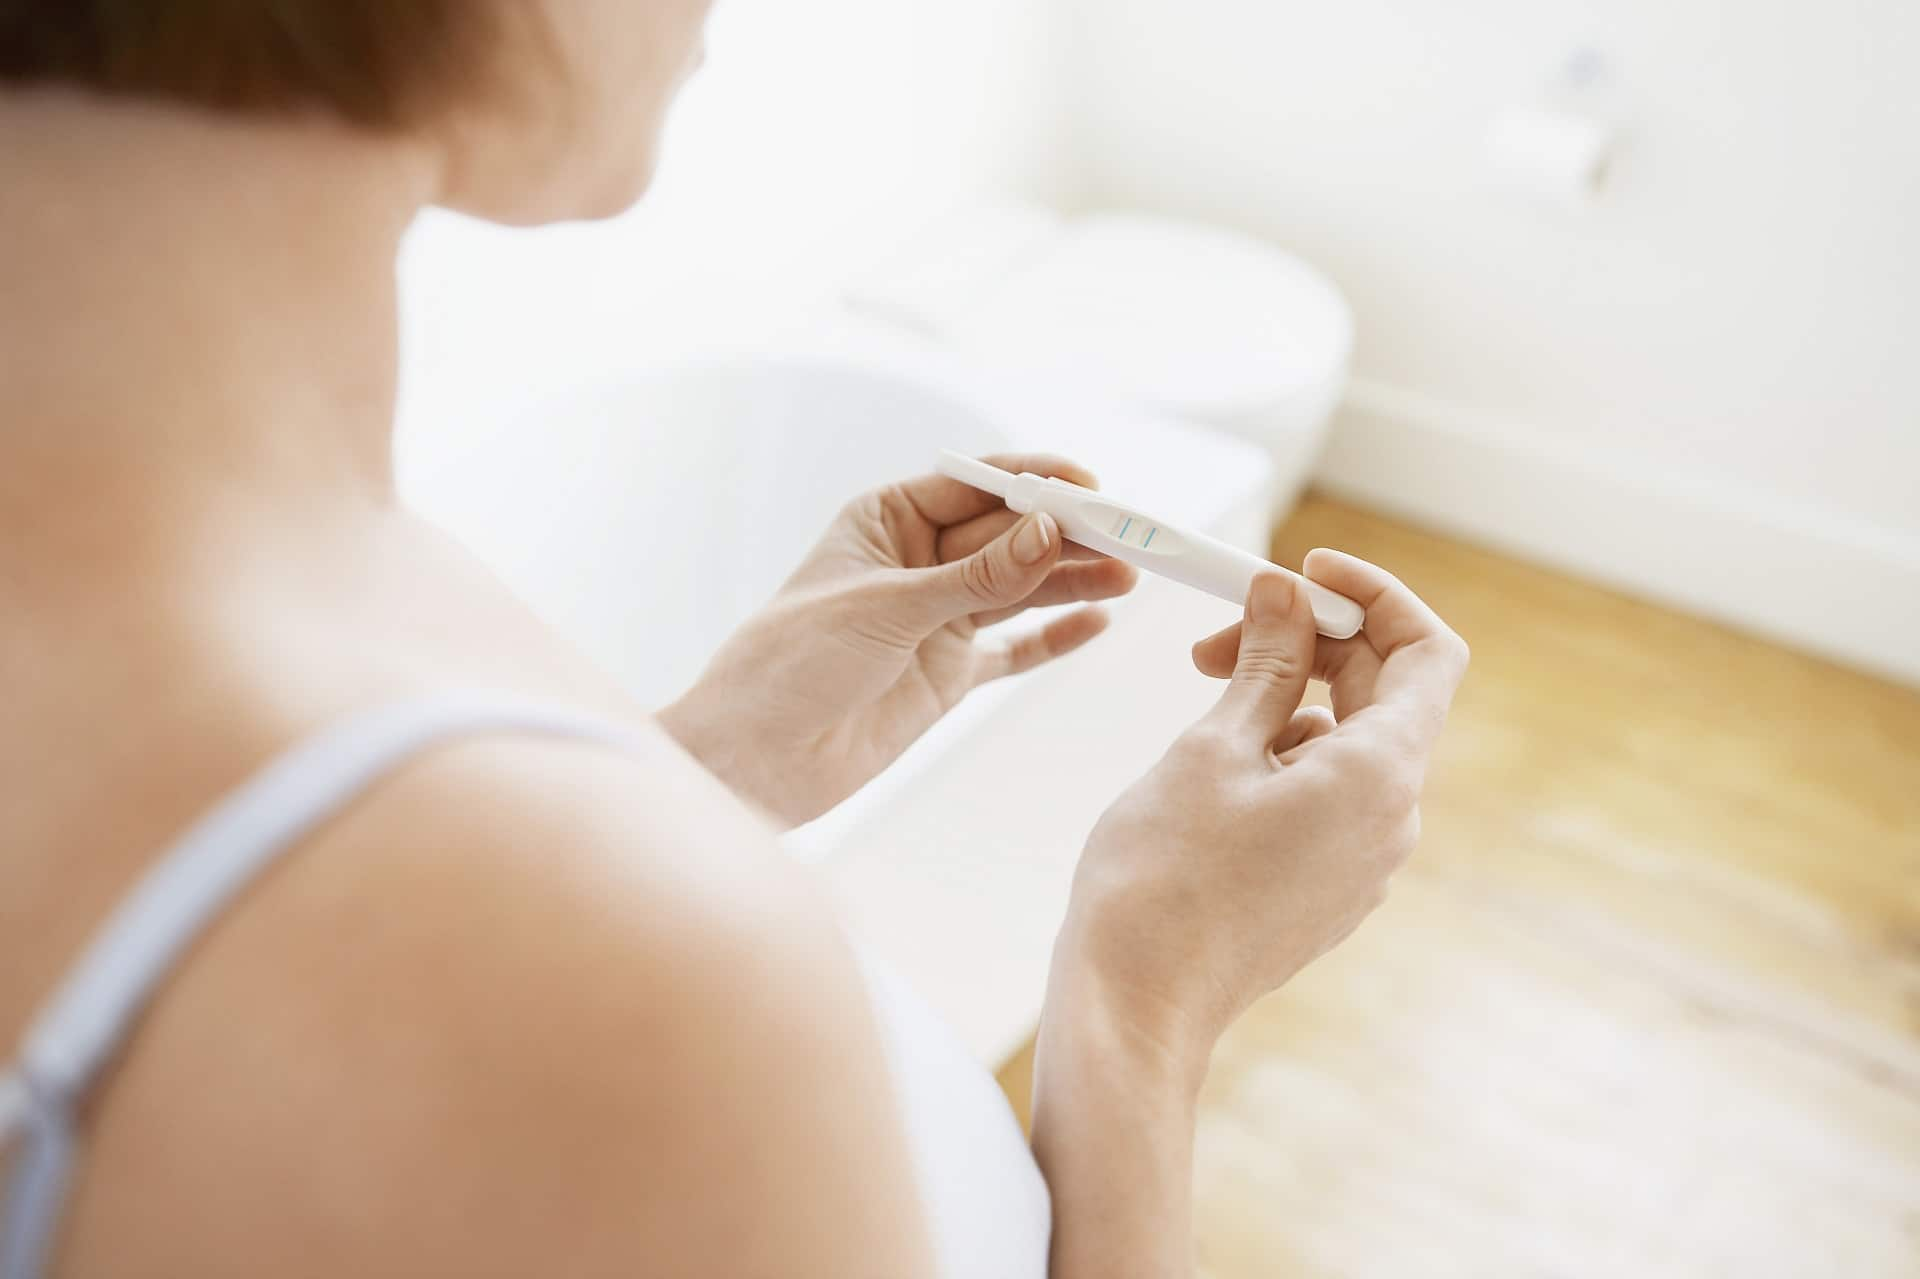 Lifestyle and Fertility Treatment to Get Pregnant With PCOS - Lifestyle and Fertility Treatment to Get Pregnant With PCOS